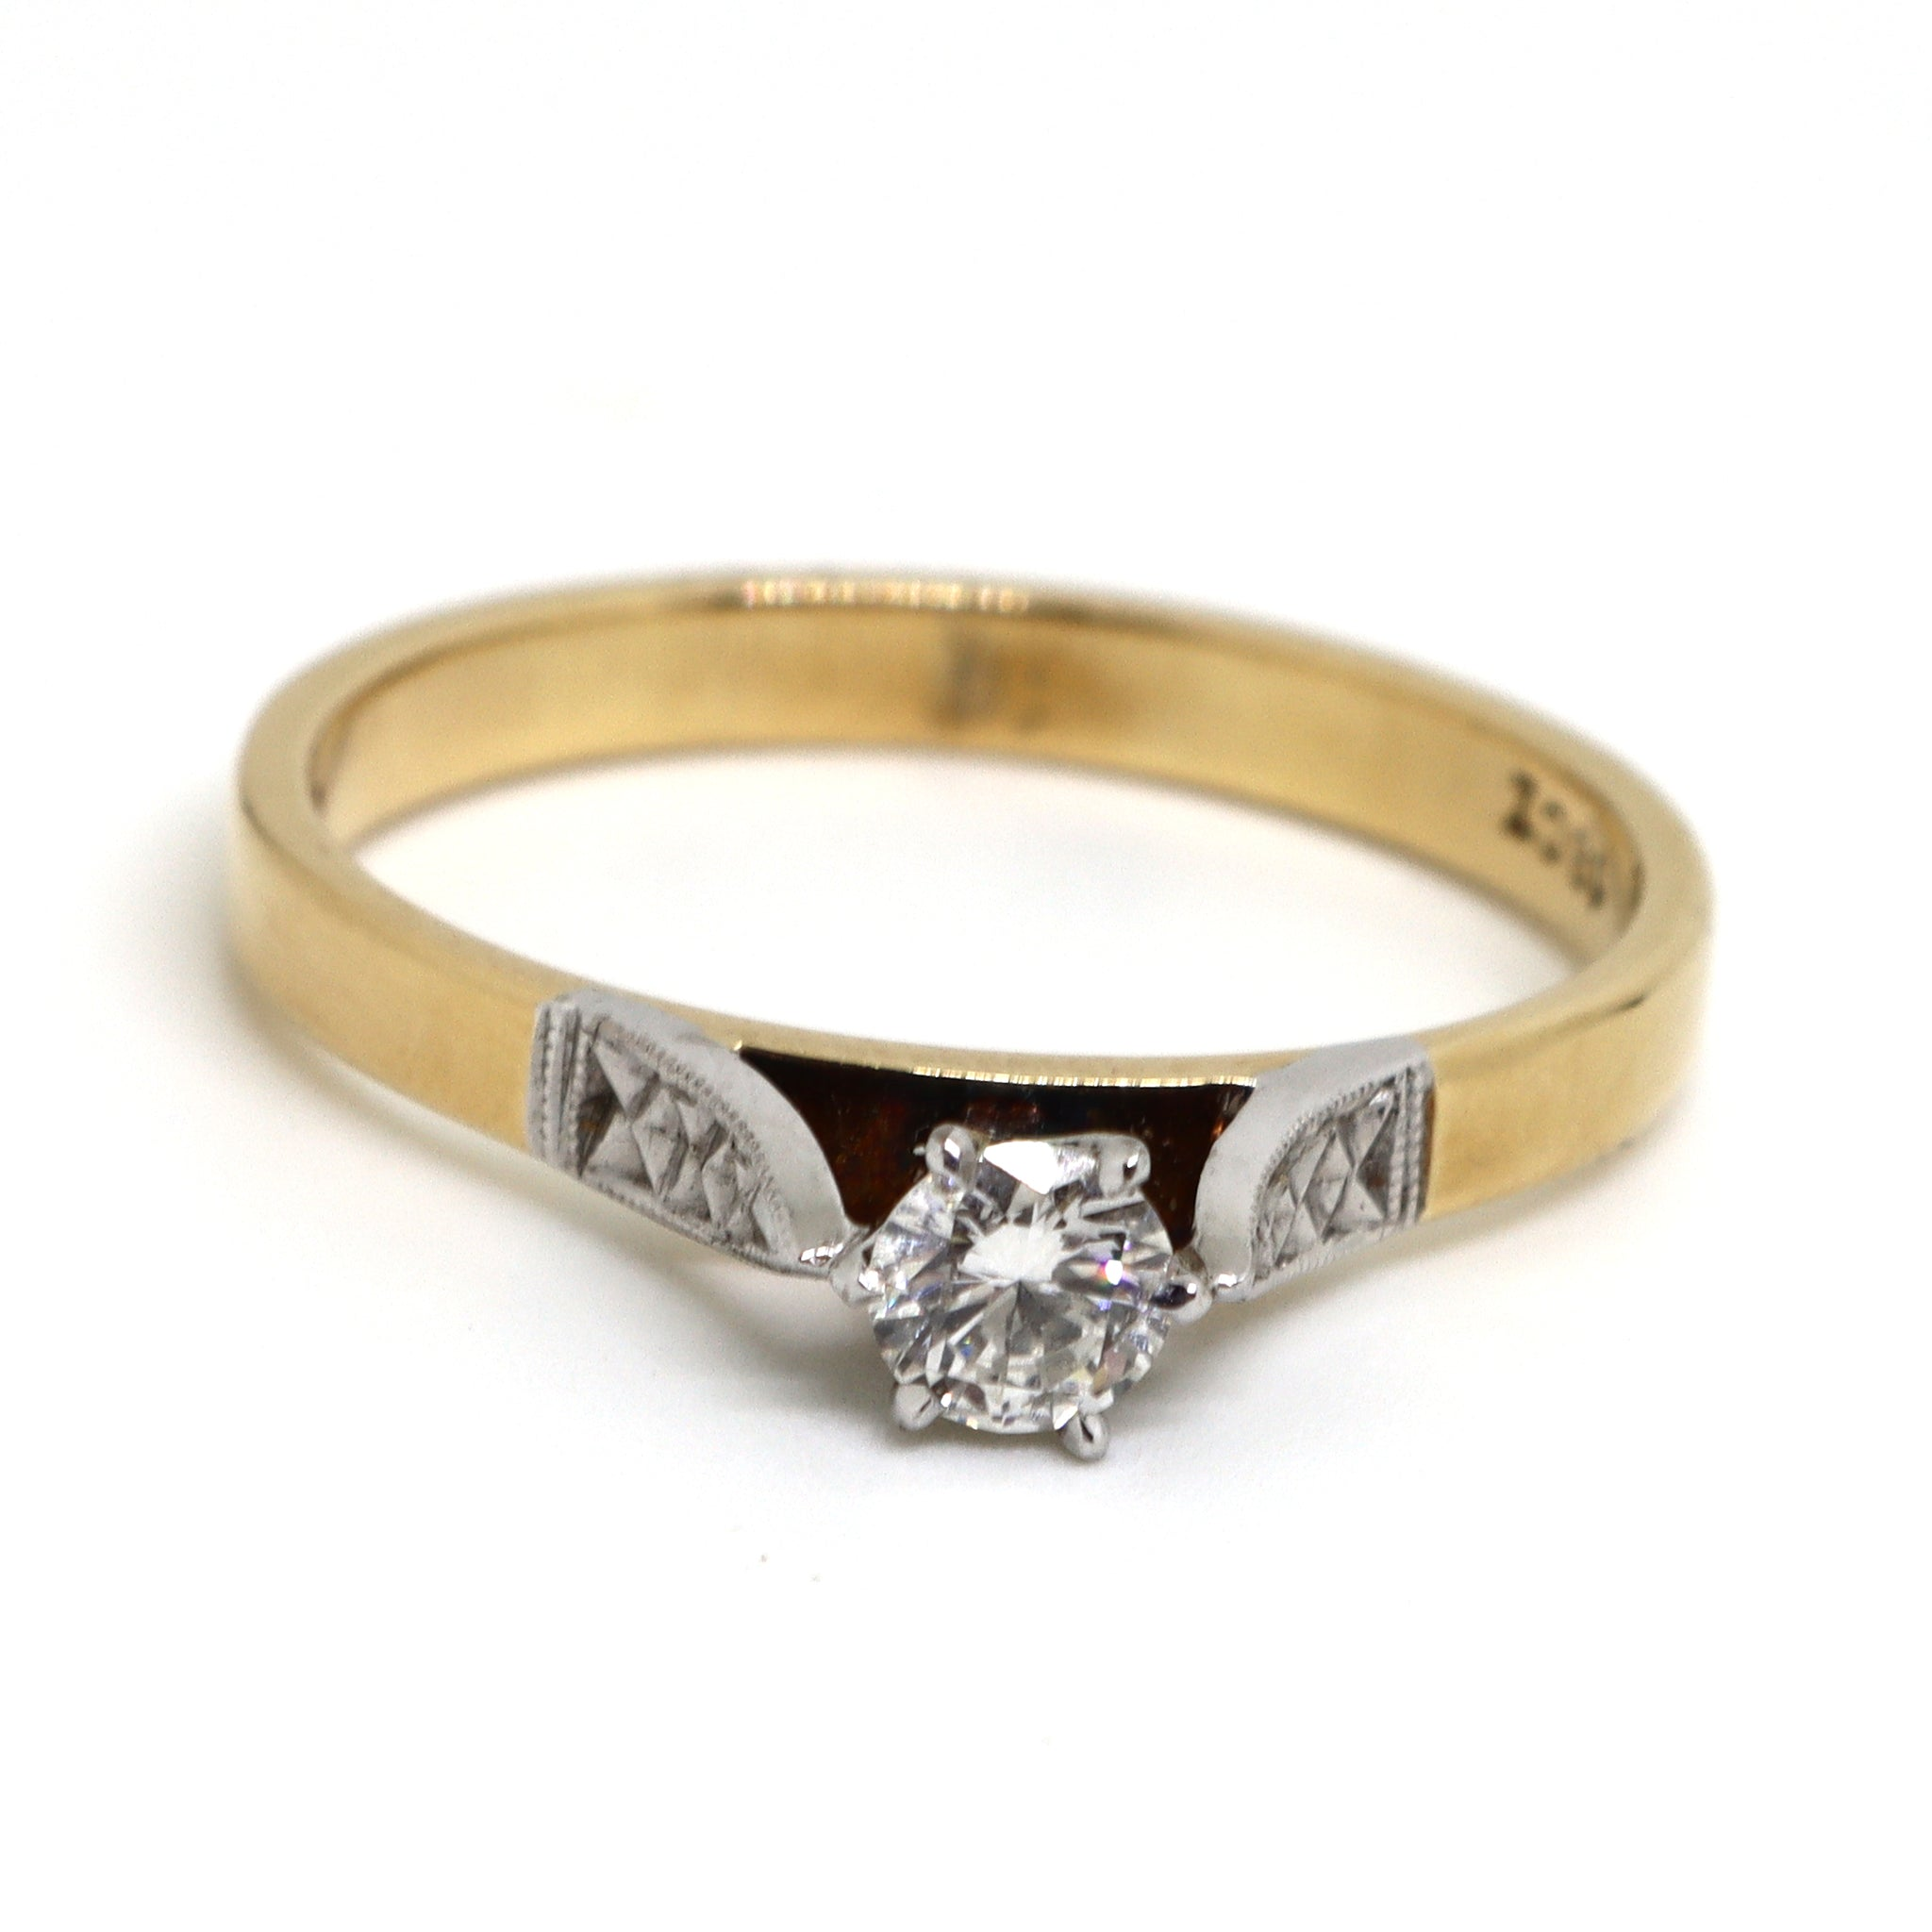 2 Tone Solitaire diamond ring